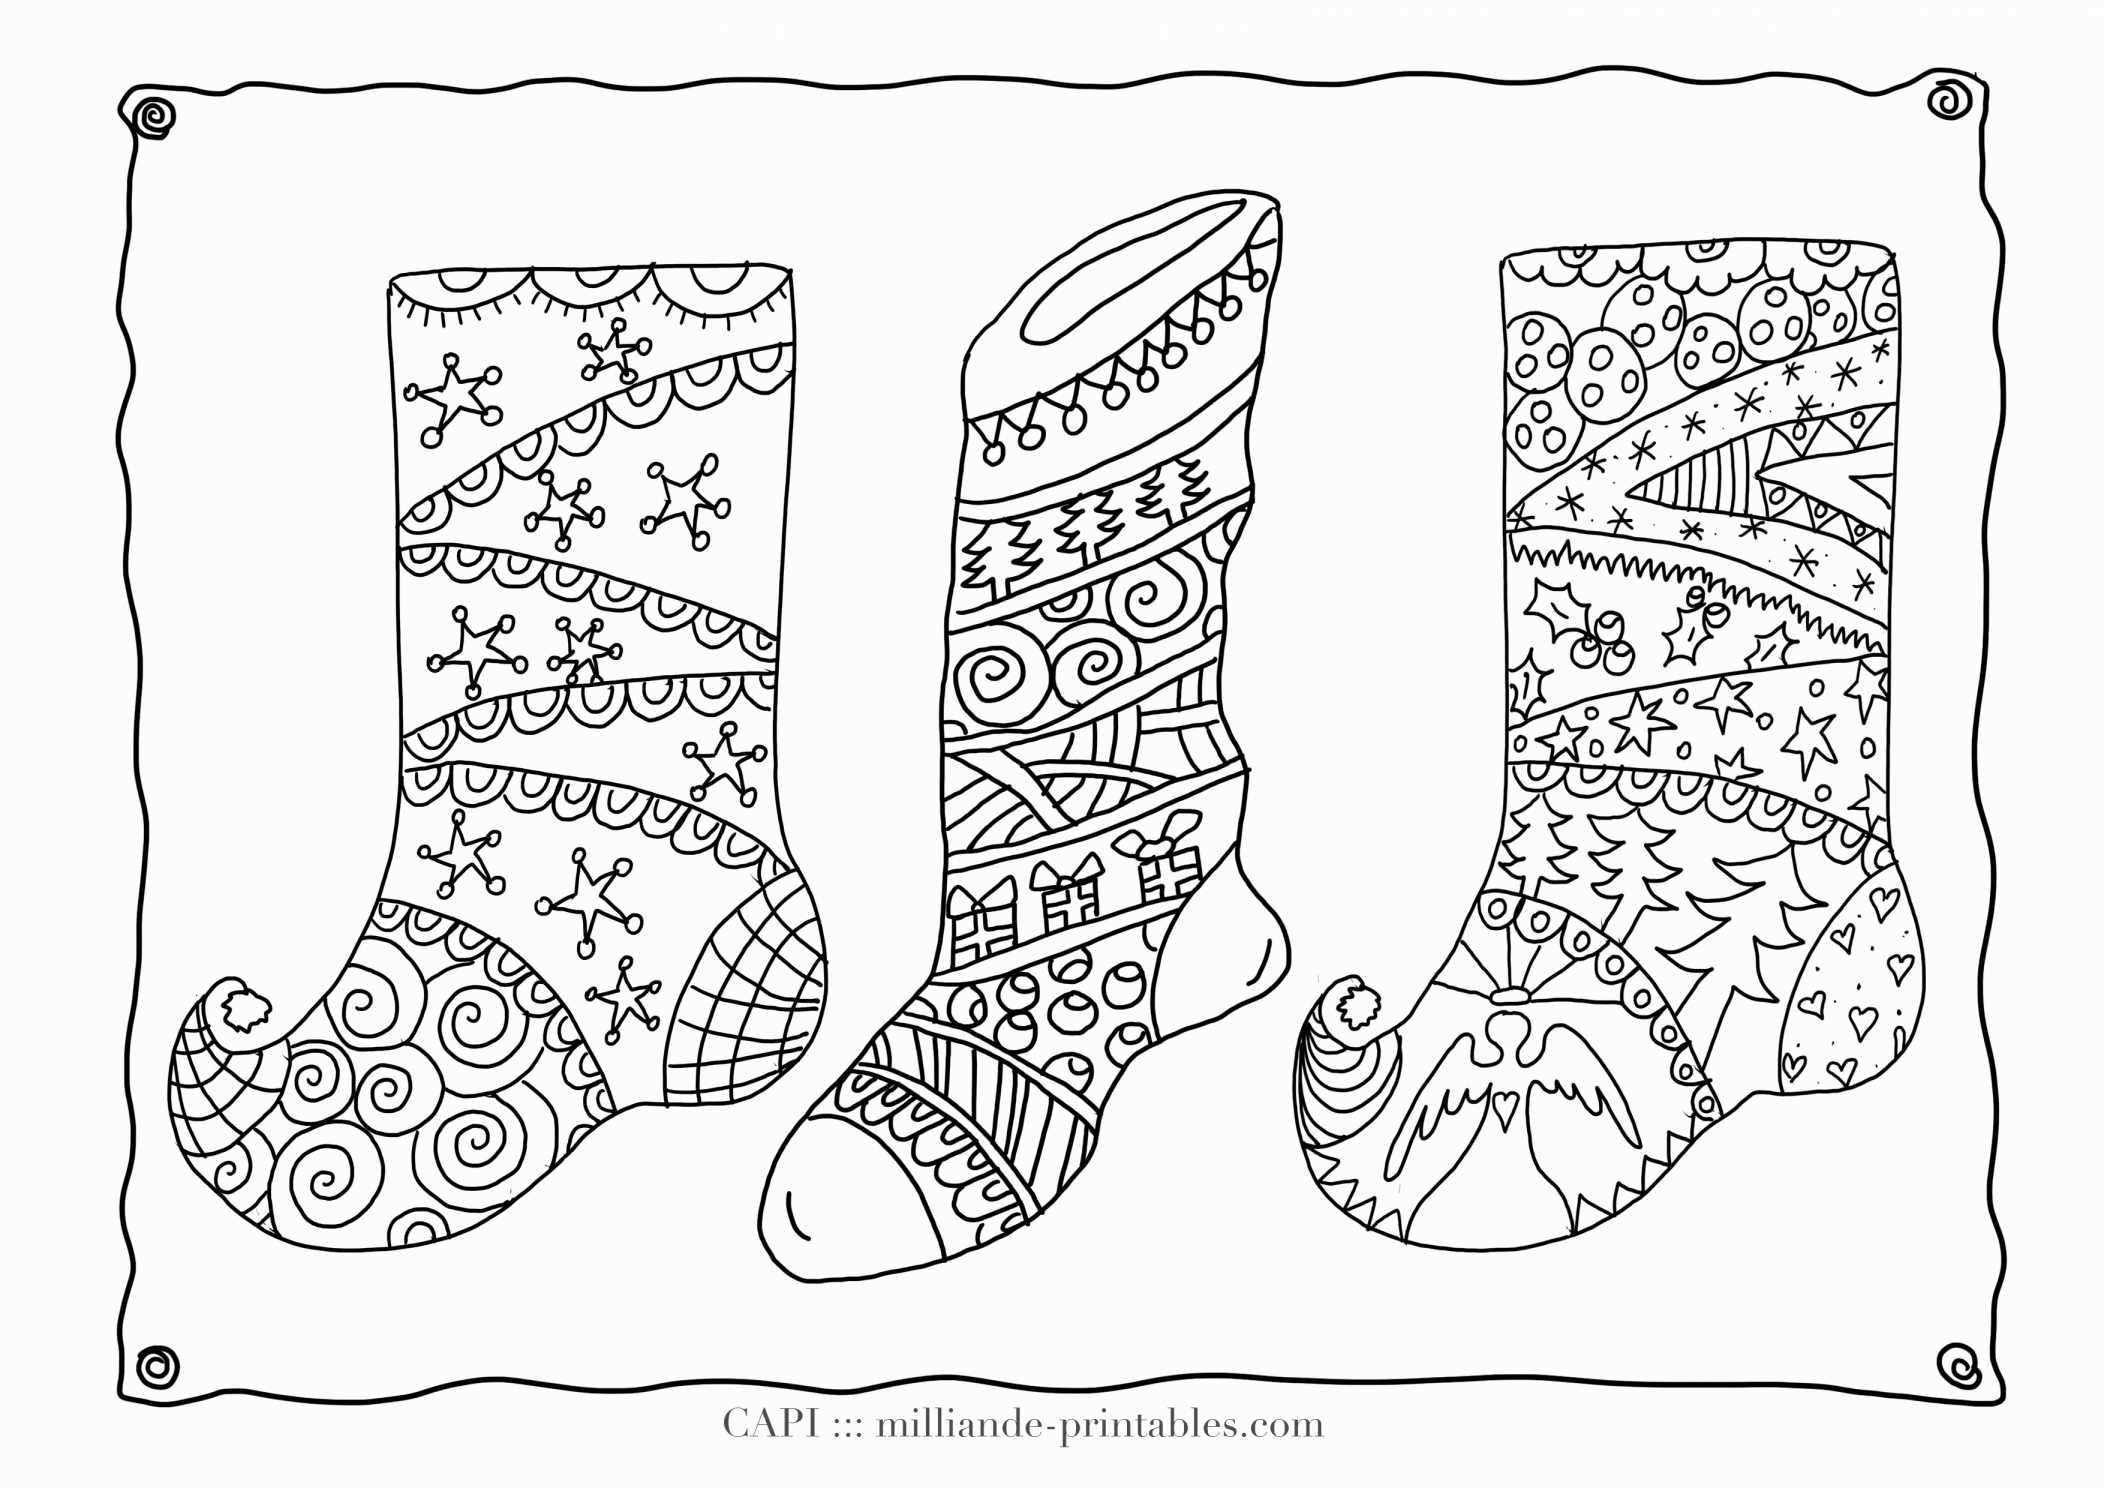 Christmas Coloring Pages Difficult For Adults With Very Page Hard